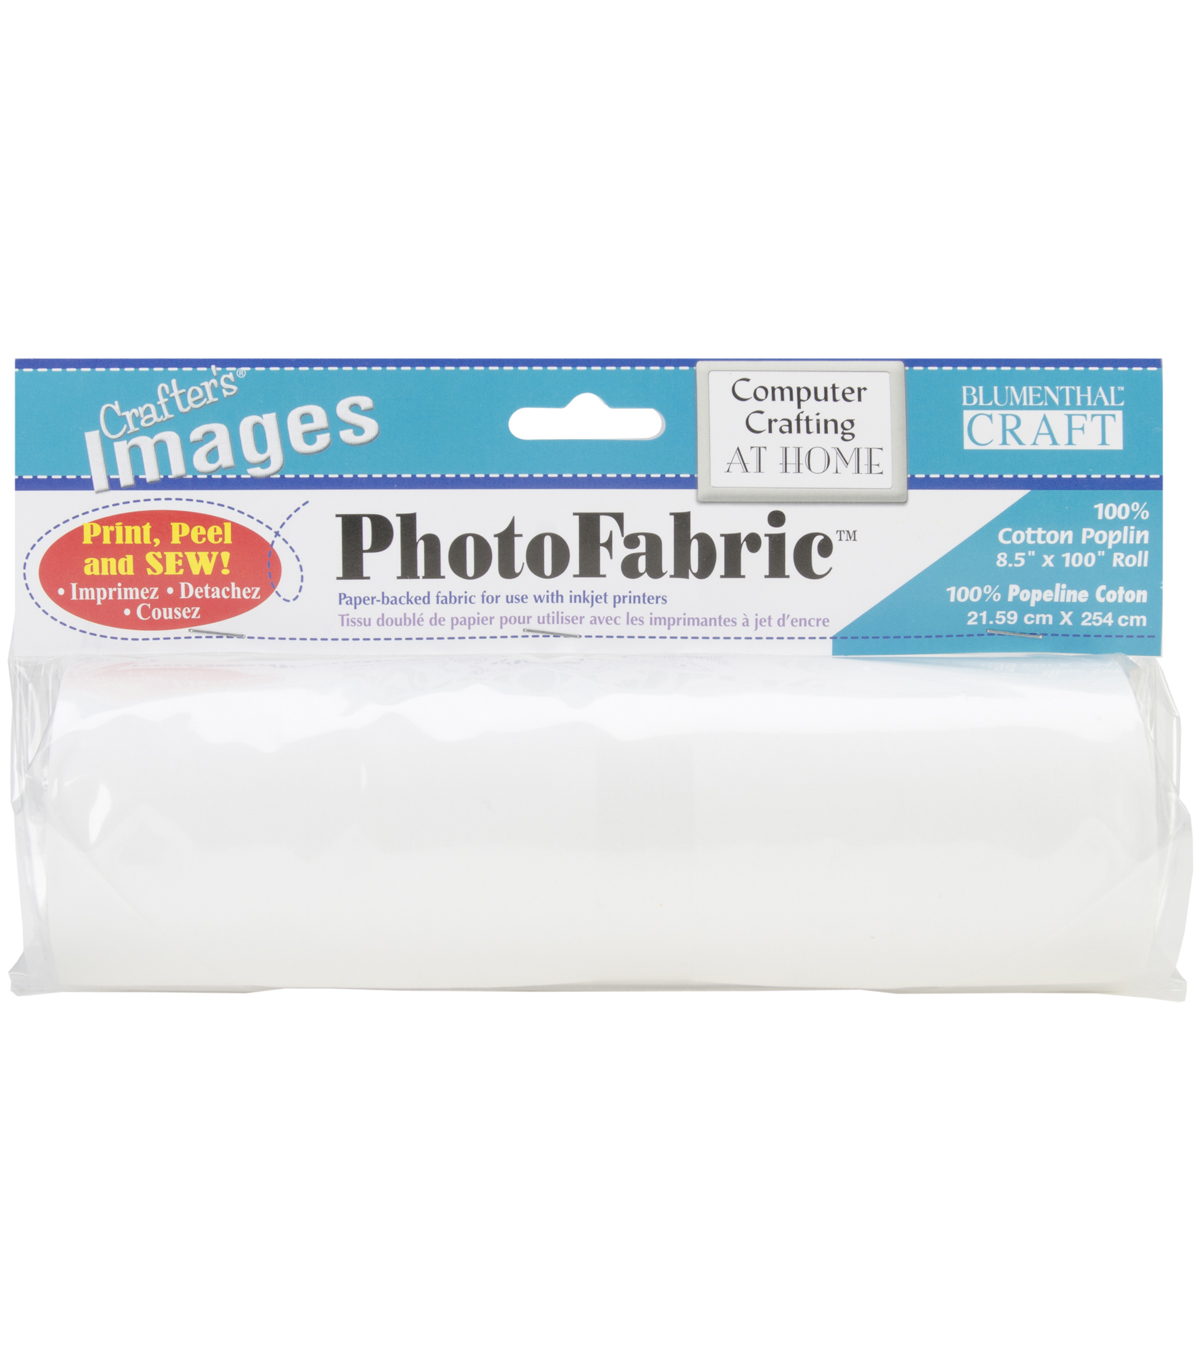 Crafter\u0027s Images PhotoFabric 100% Cotton Poplin Roll